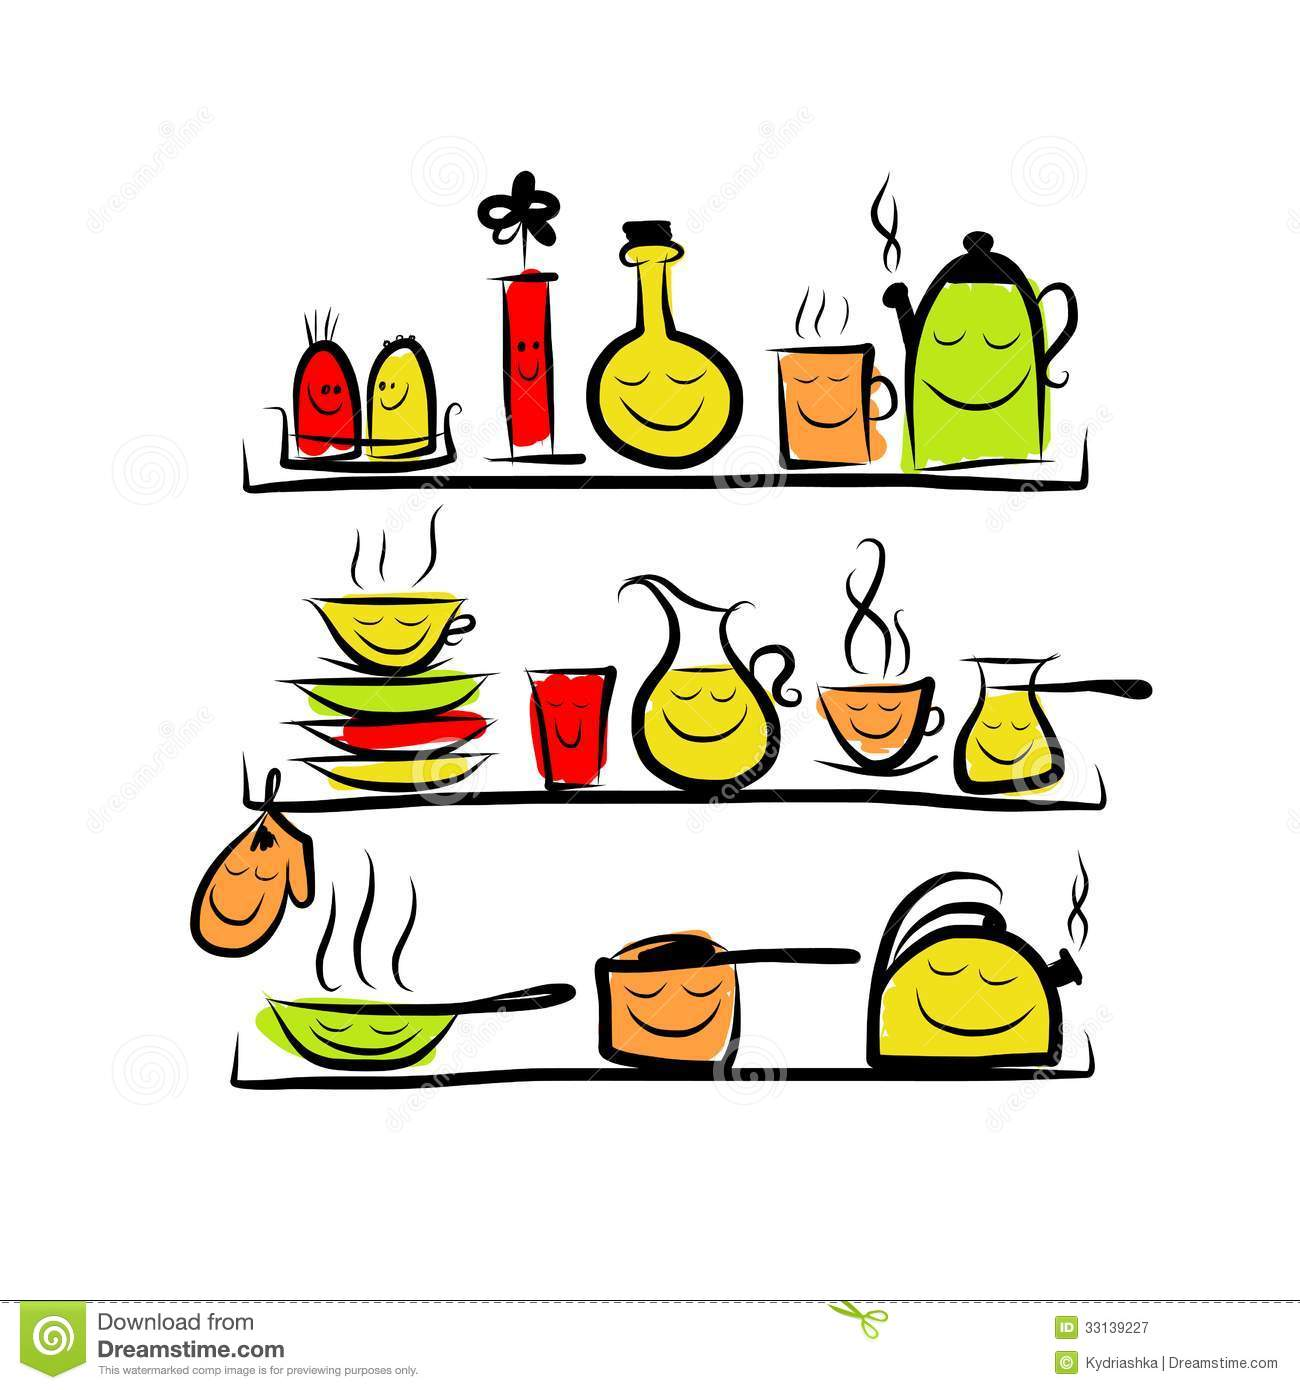 Kitchen utensils characters on shelves sketch royalty for Dibujos para cocina